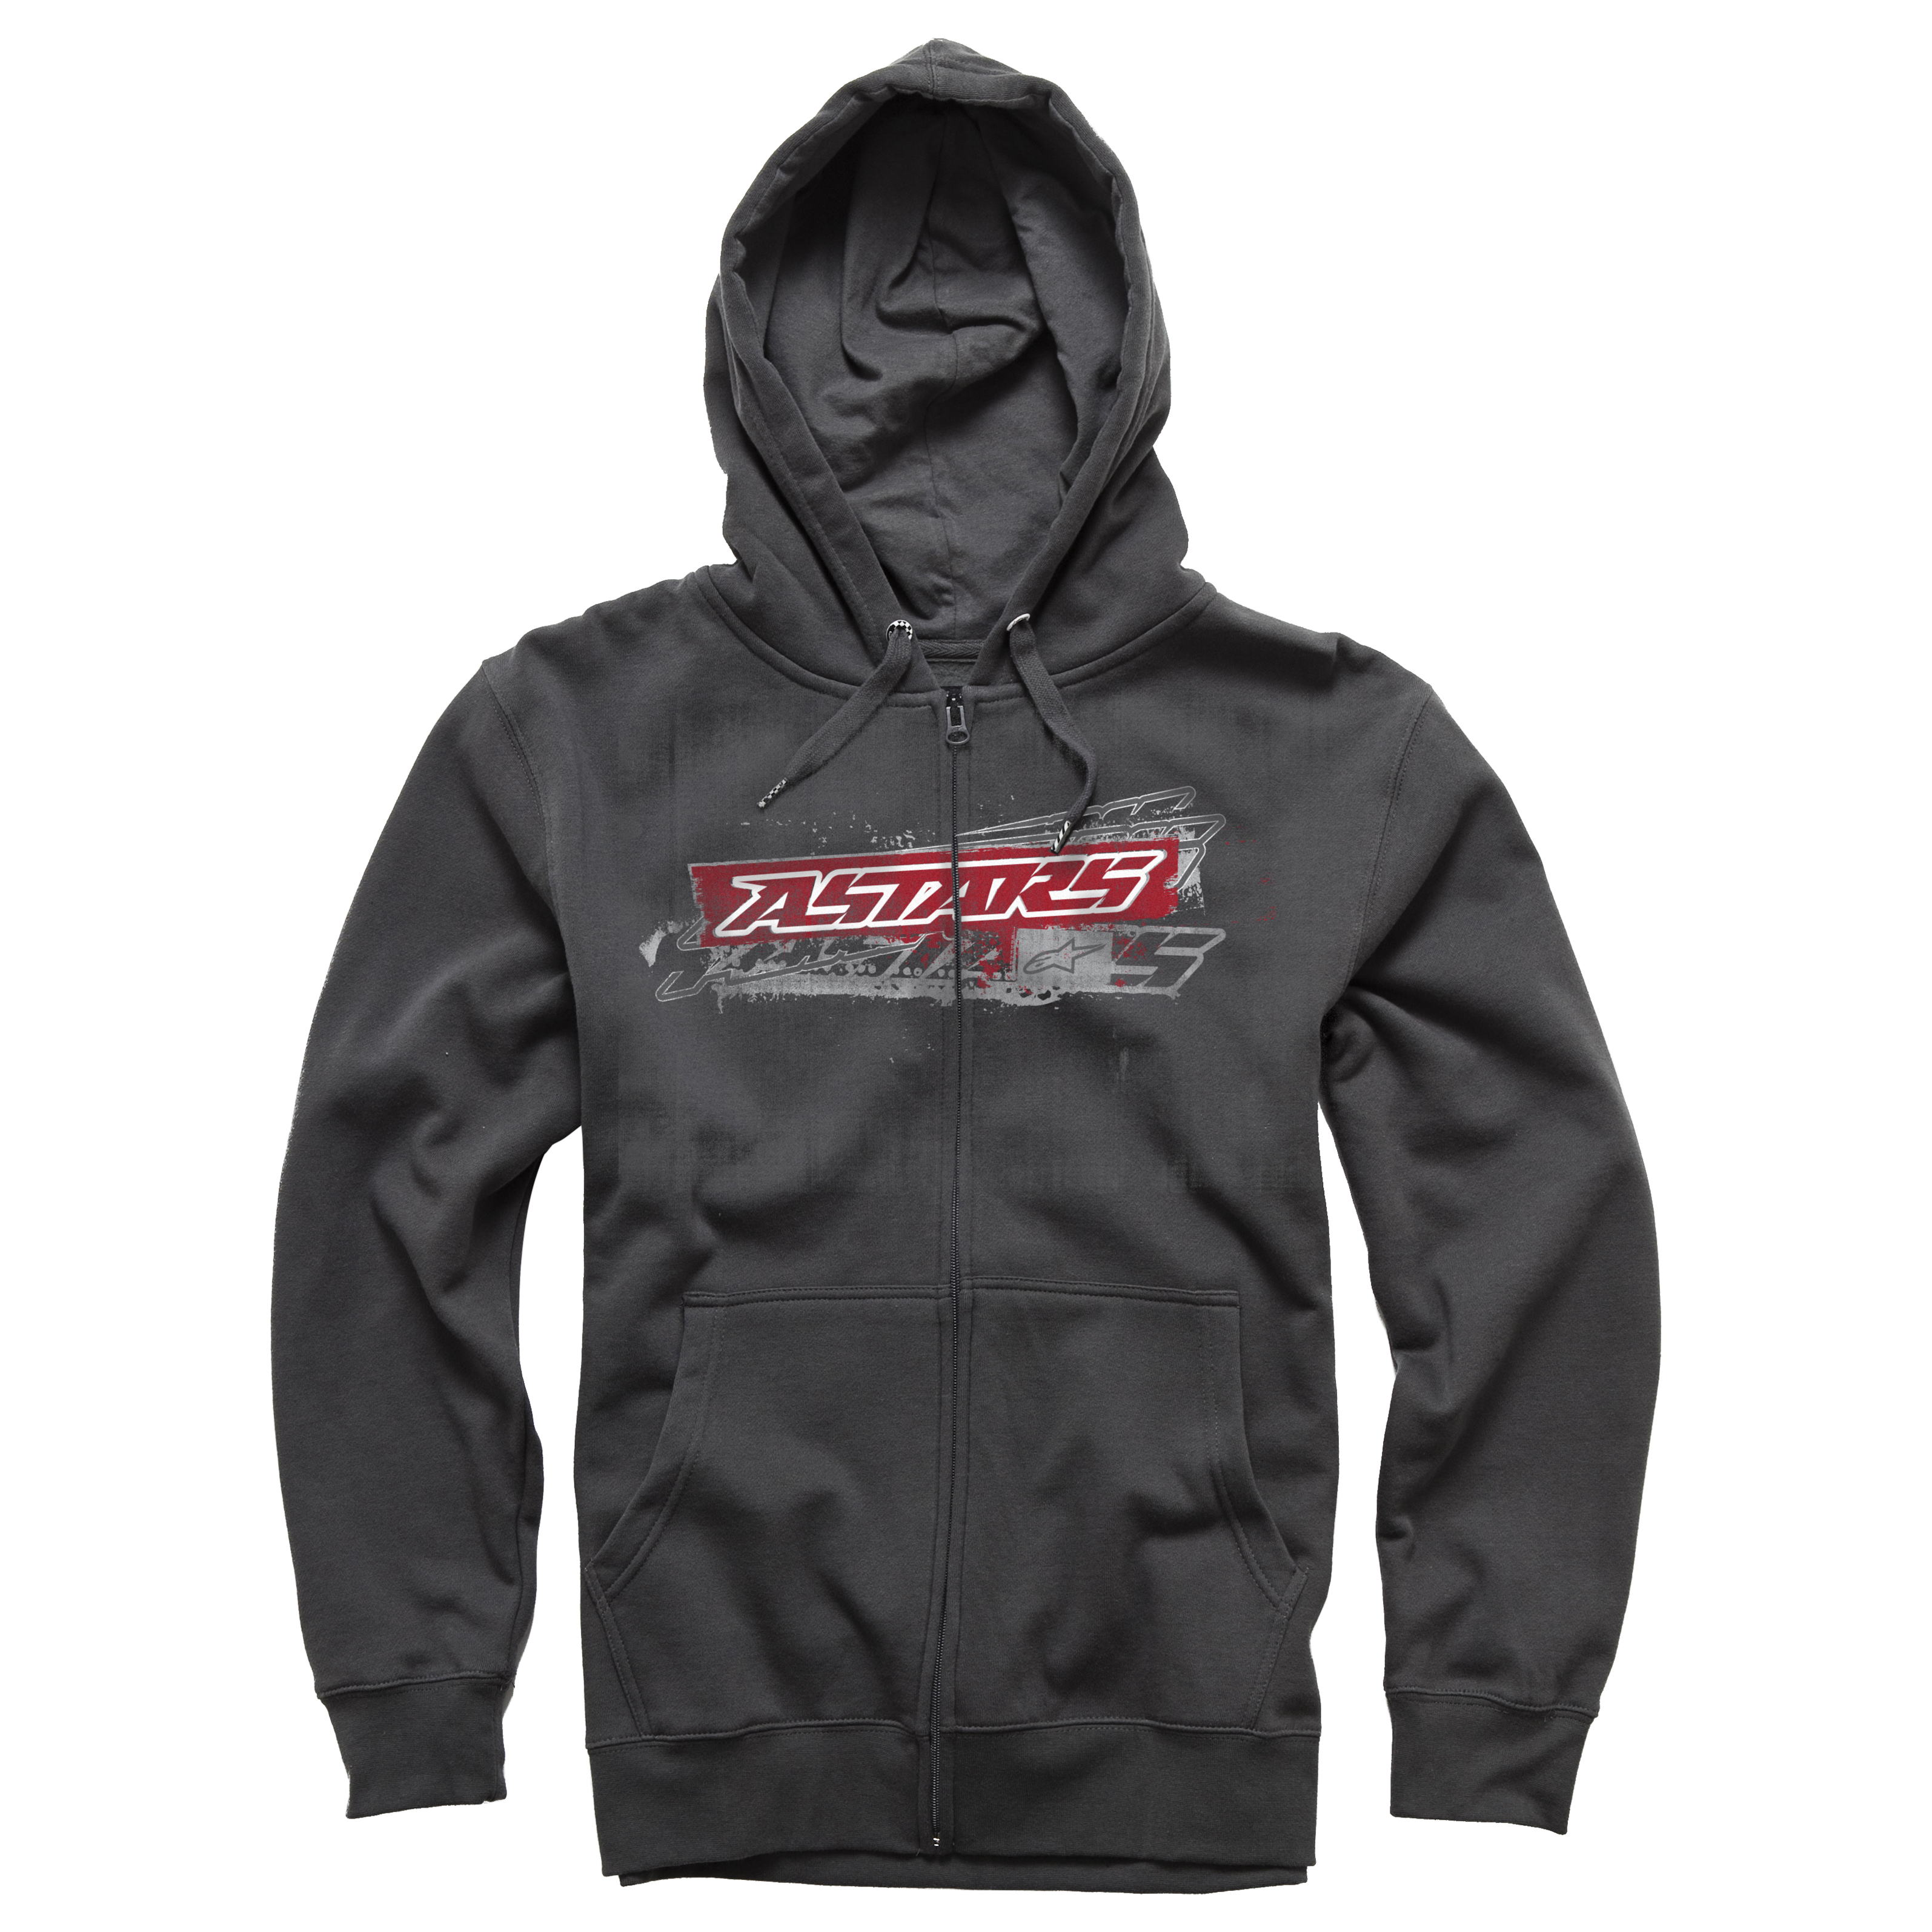 Alpinestars Quickie Zip Fleece - Charcoal